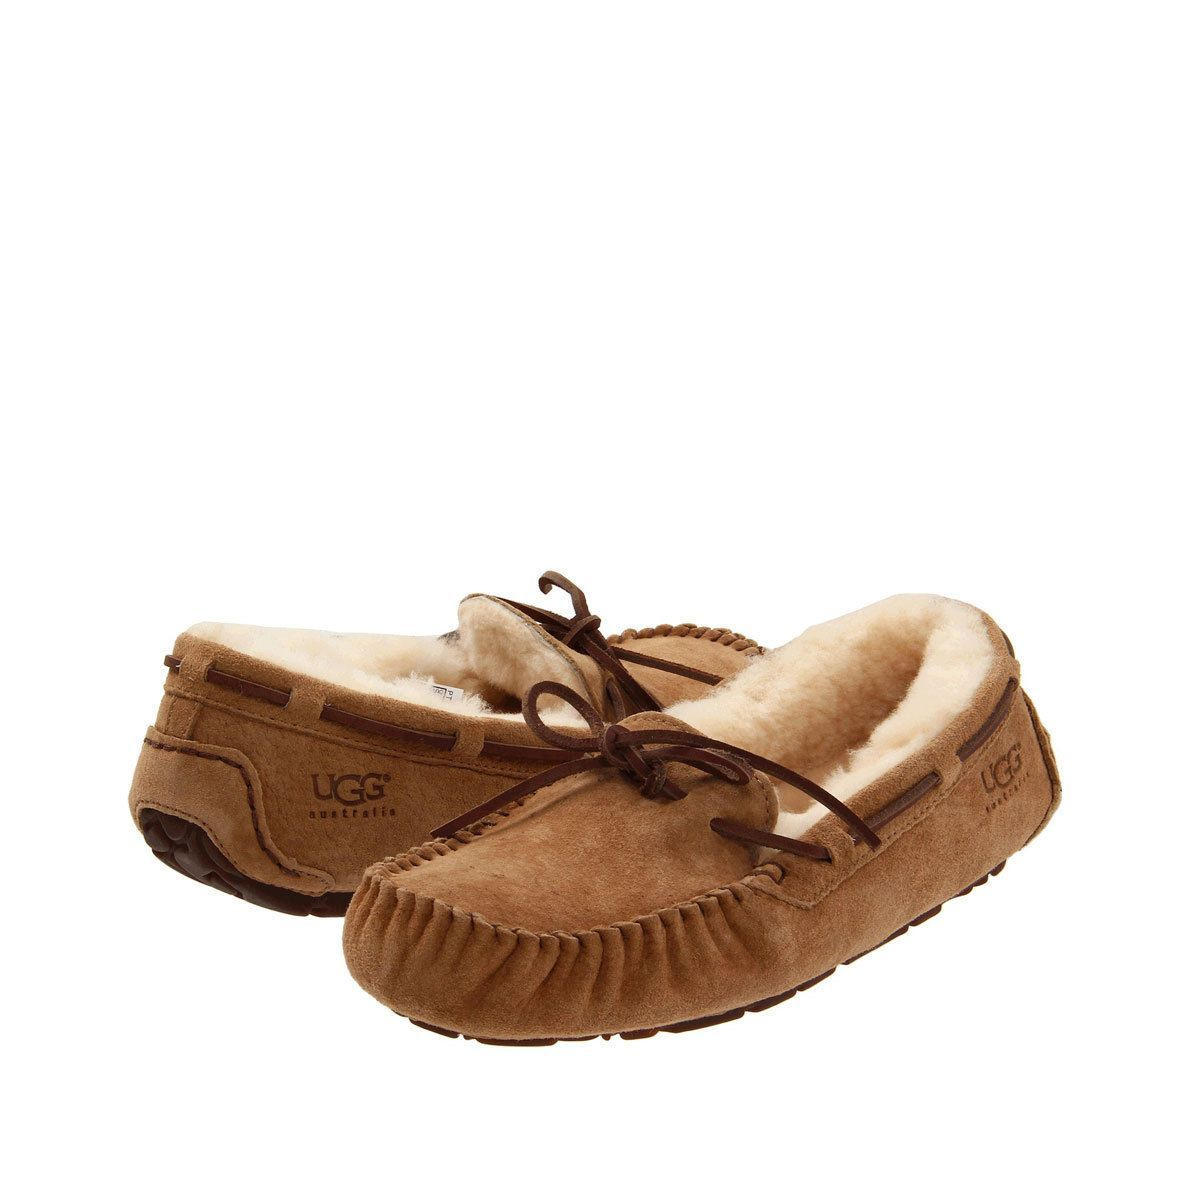 03c087c3fad Women'S Shoes Ugg Dakota Moccasin Slippers 5612 Chestnut 5 6 7 8 9 ...